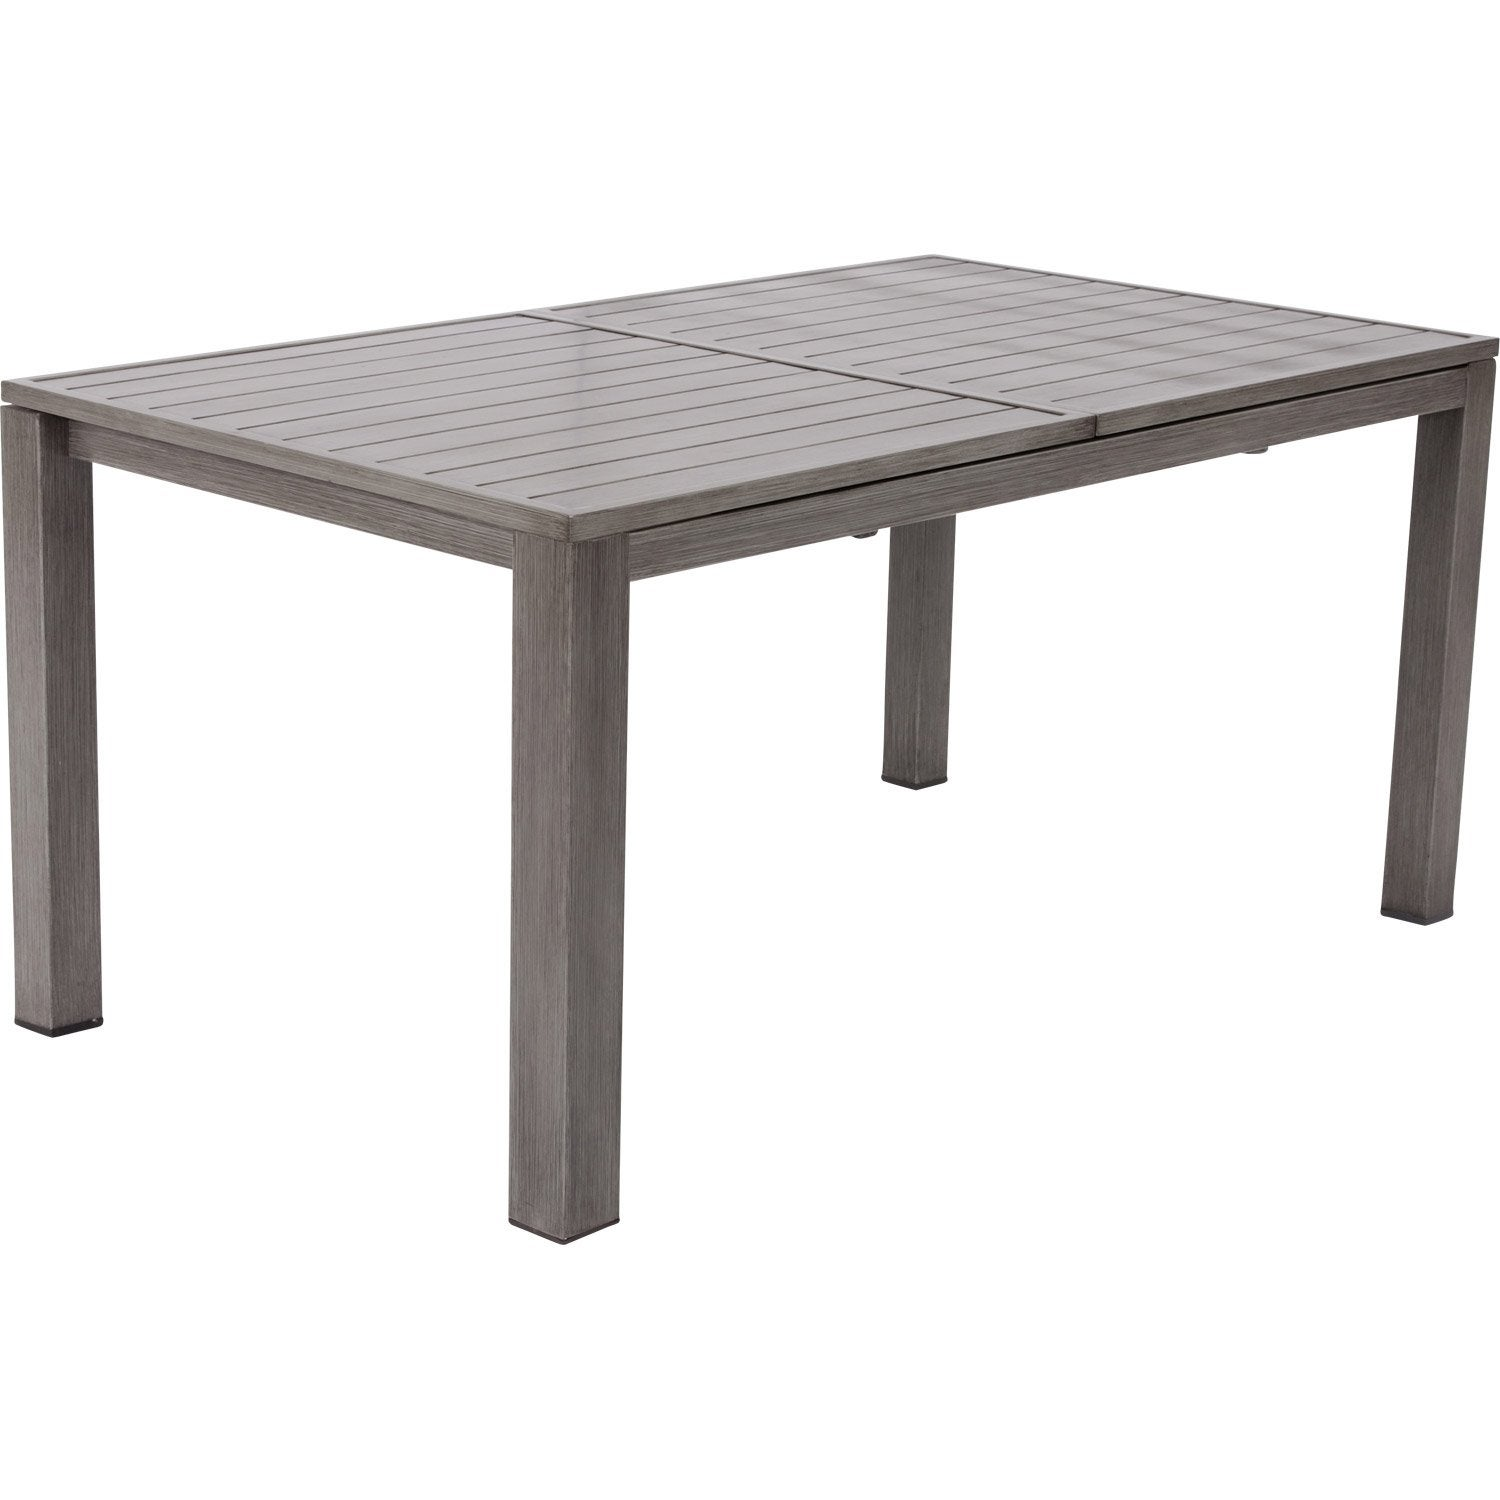 table de jardin naterial antibes 220 rectangulaire gris. Black Bedroom Furniture Sets. Home Design Ideas